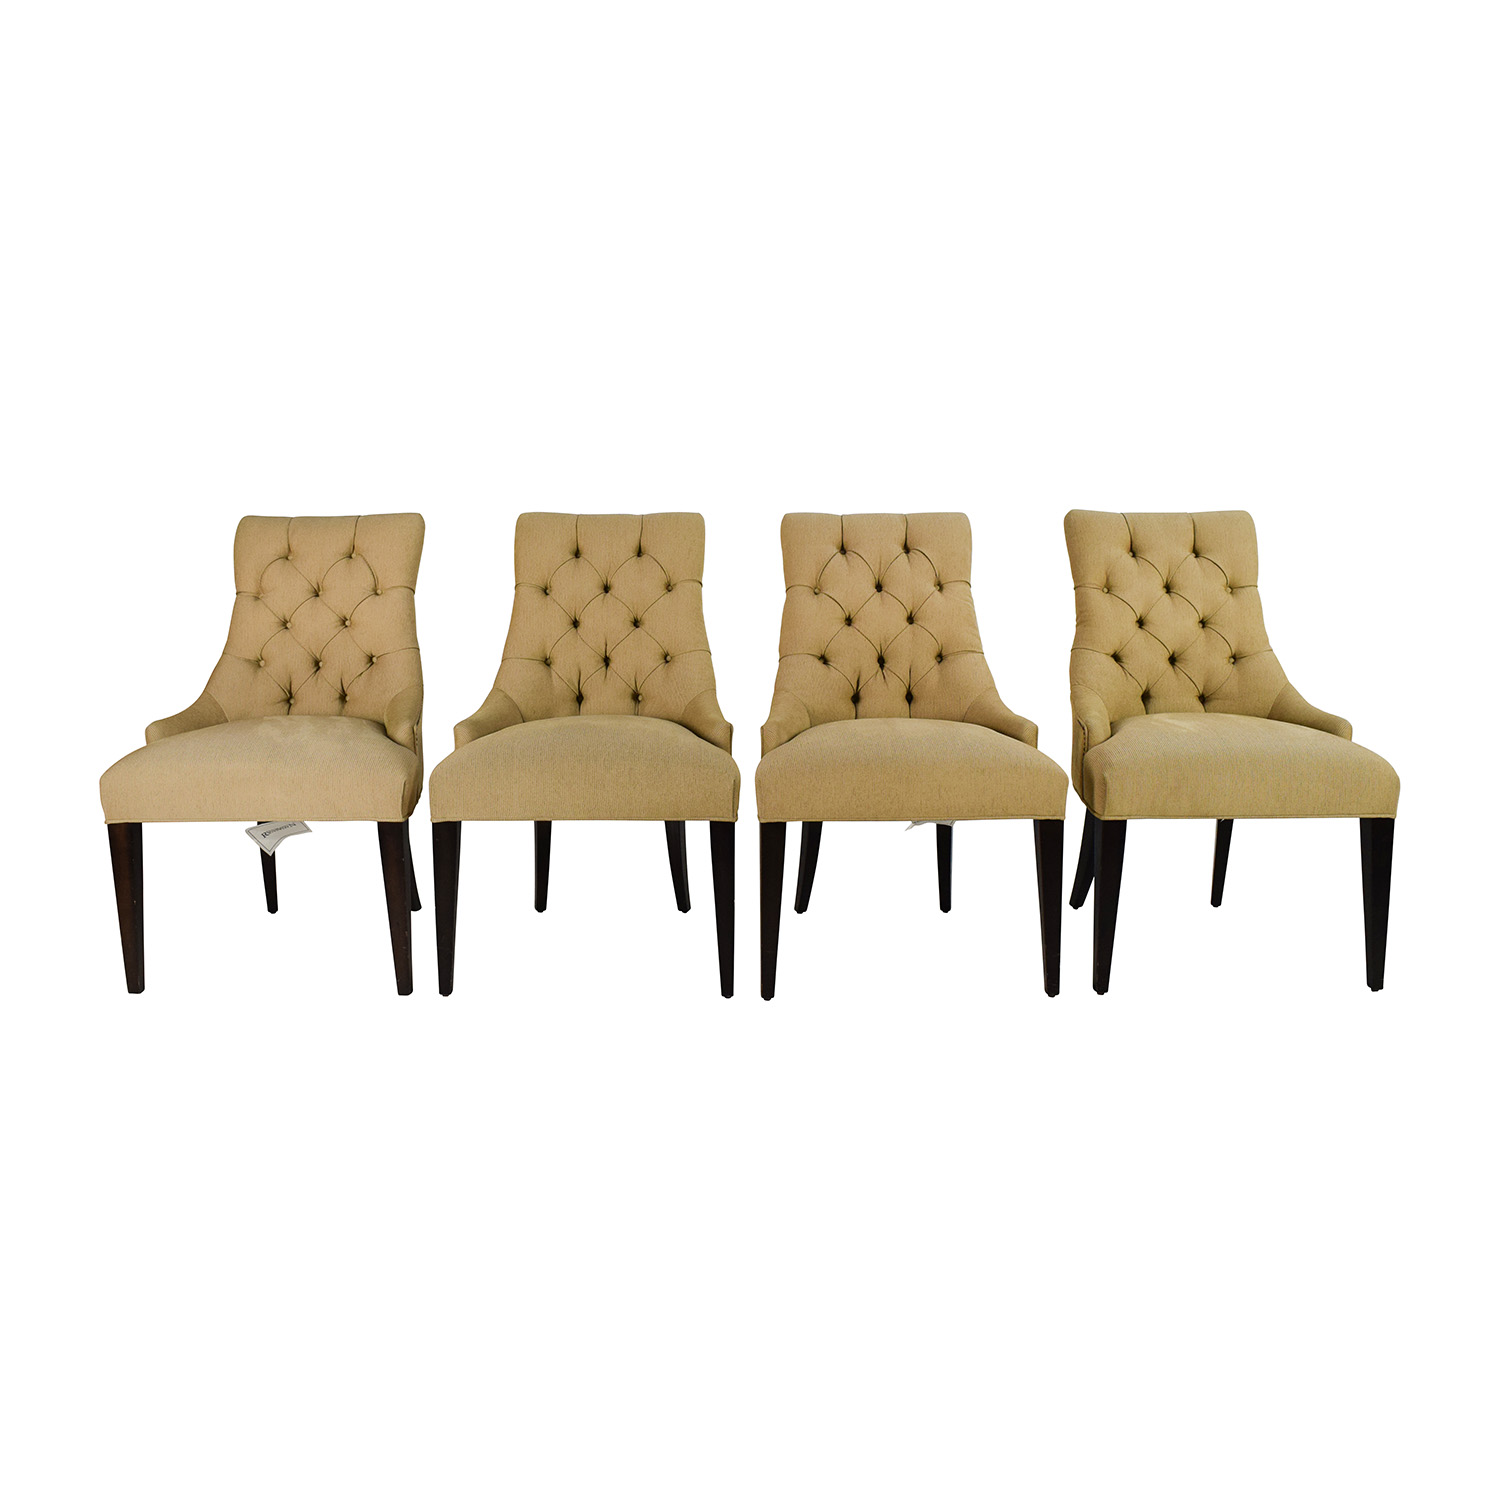 Superb Buy Restoration Hardware Restoration Hardware Martine Tufted Fabric  Armchair Set Online Part 32